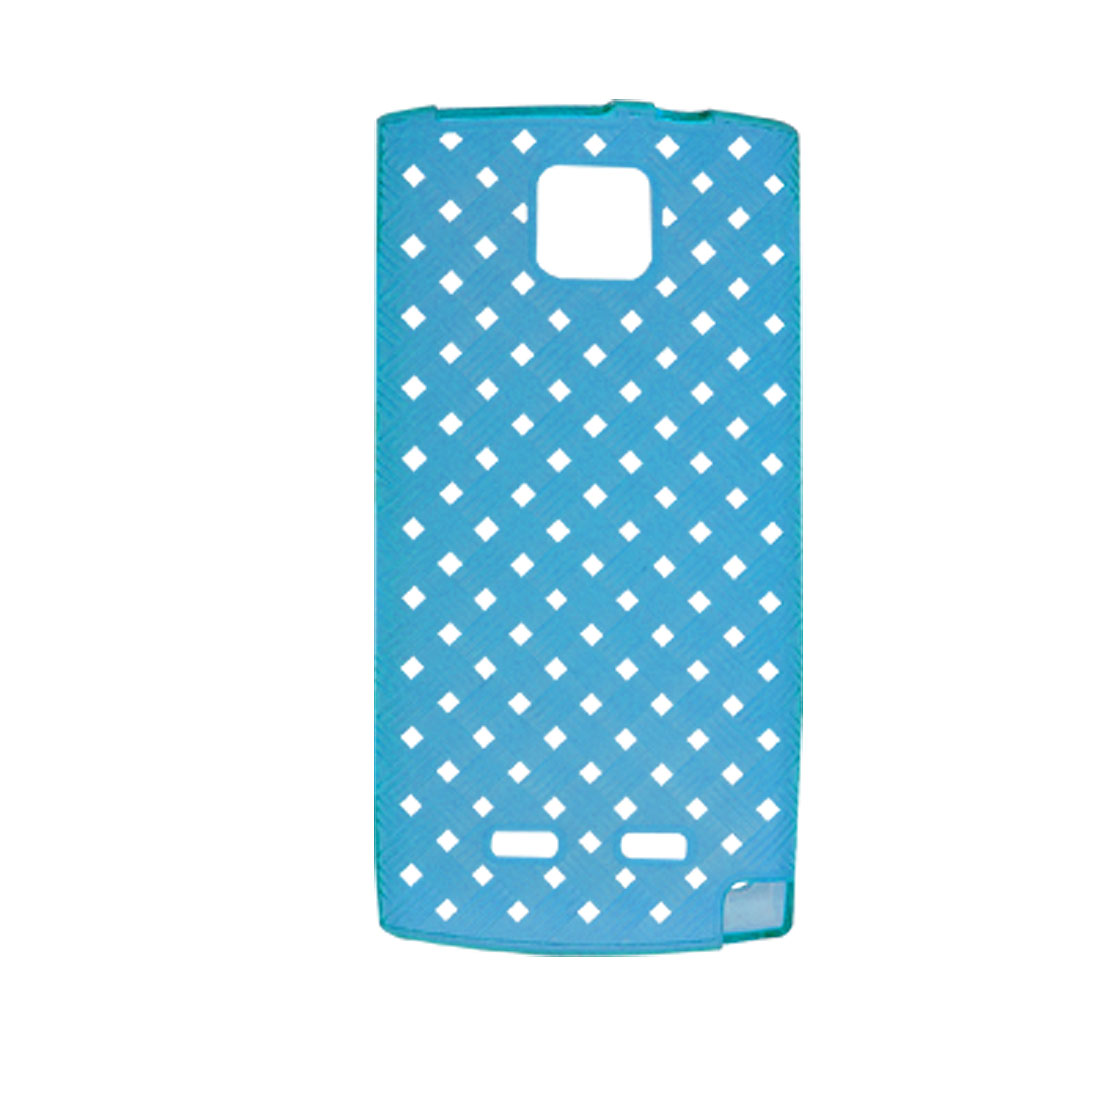 Blue Soft Plastic Woven Pattern Cover Case for Nokia 5250